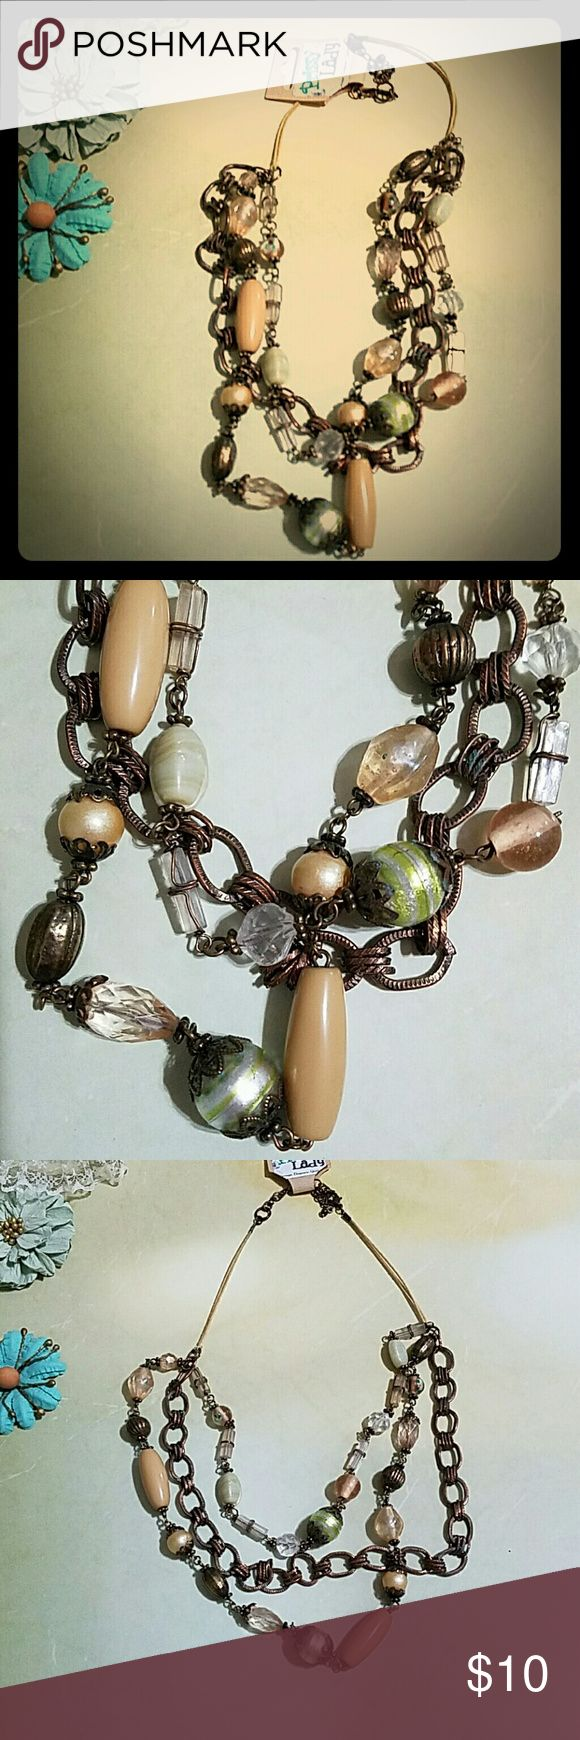 Boho Necklace This necklace is made to have a beautiful layered look. Very bohemian. Costume jewelry. Jewelry Necklaces